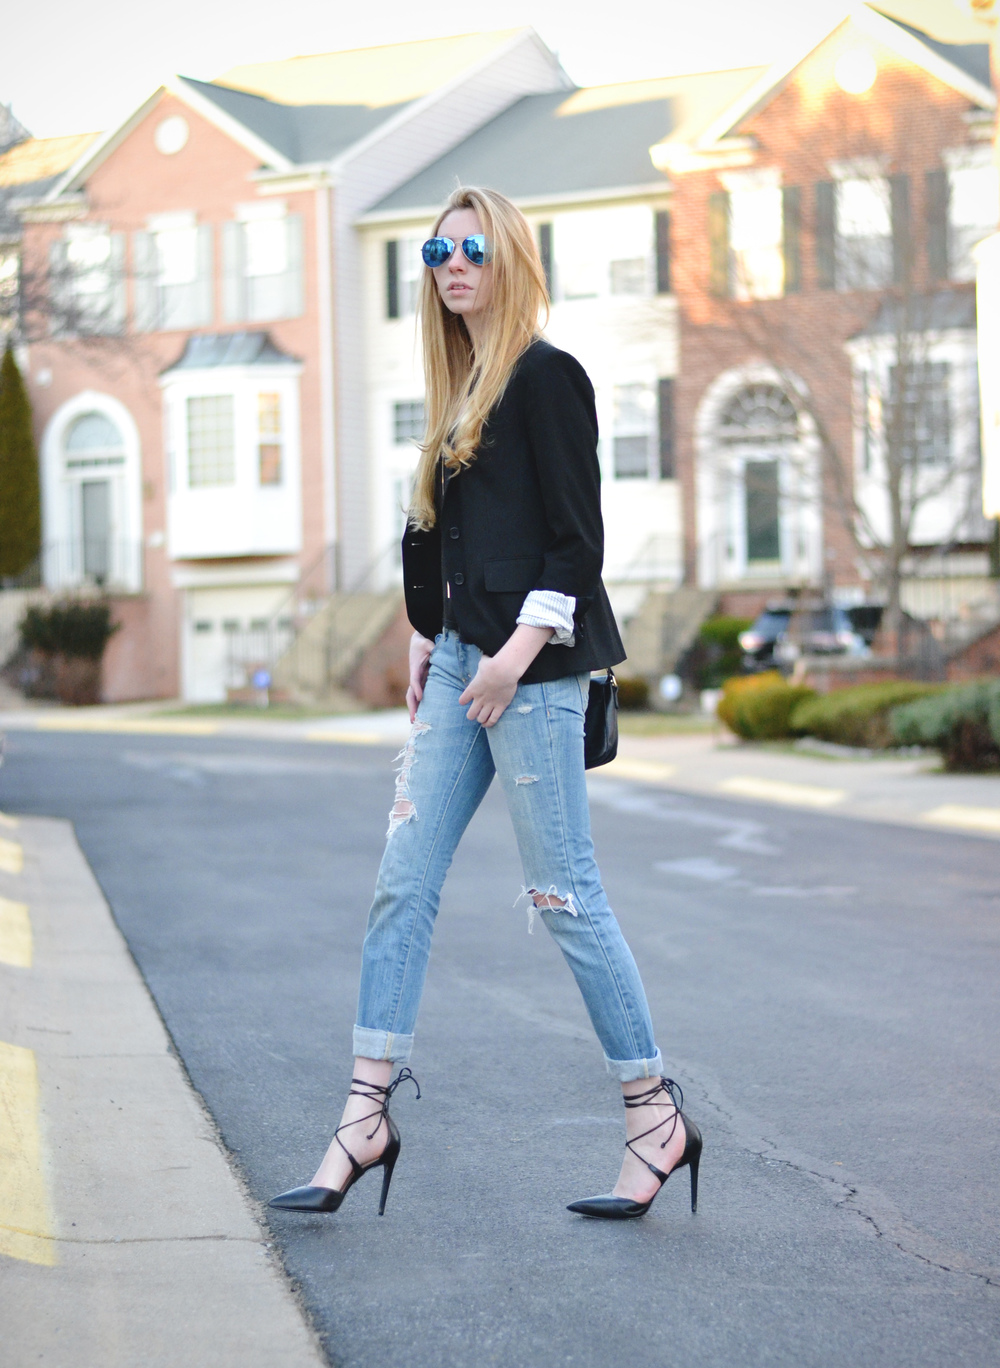 Black Blazer & Ripped Boyfriend Jeans (via Girl x Garment)